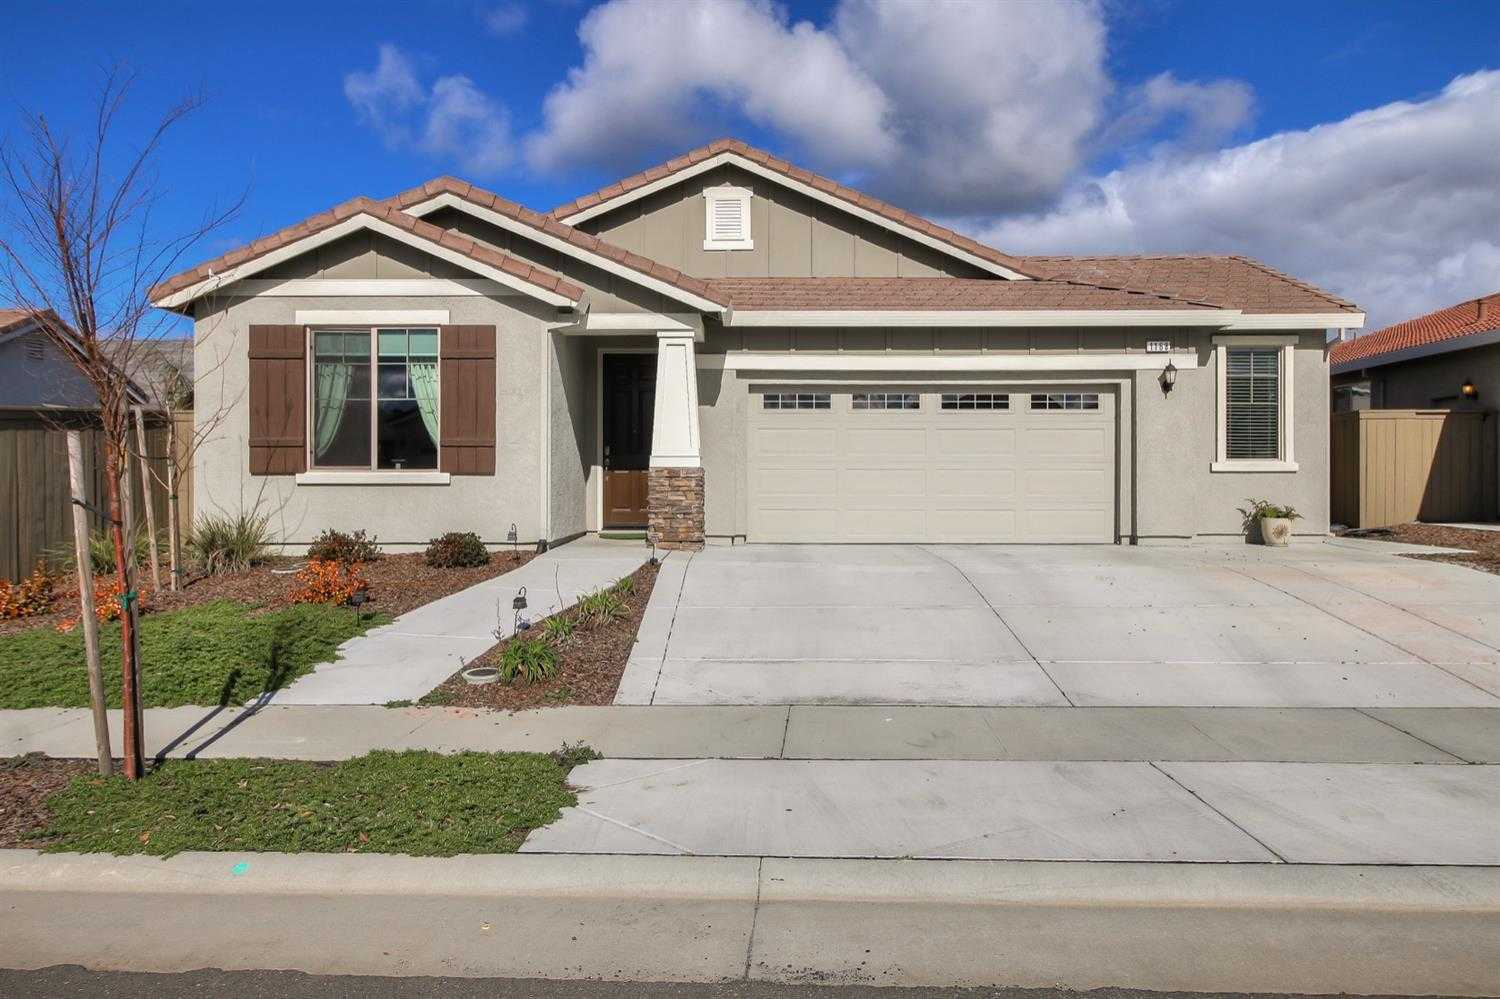 $465,000 - 3Br/2Ba -  for Sale in Fiddyment Ranch Ph 2 Vlgs F-9, Roseville